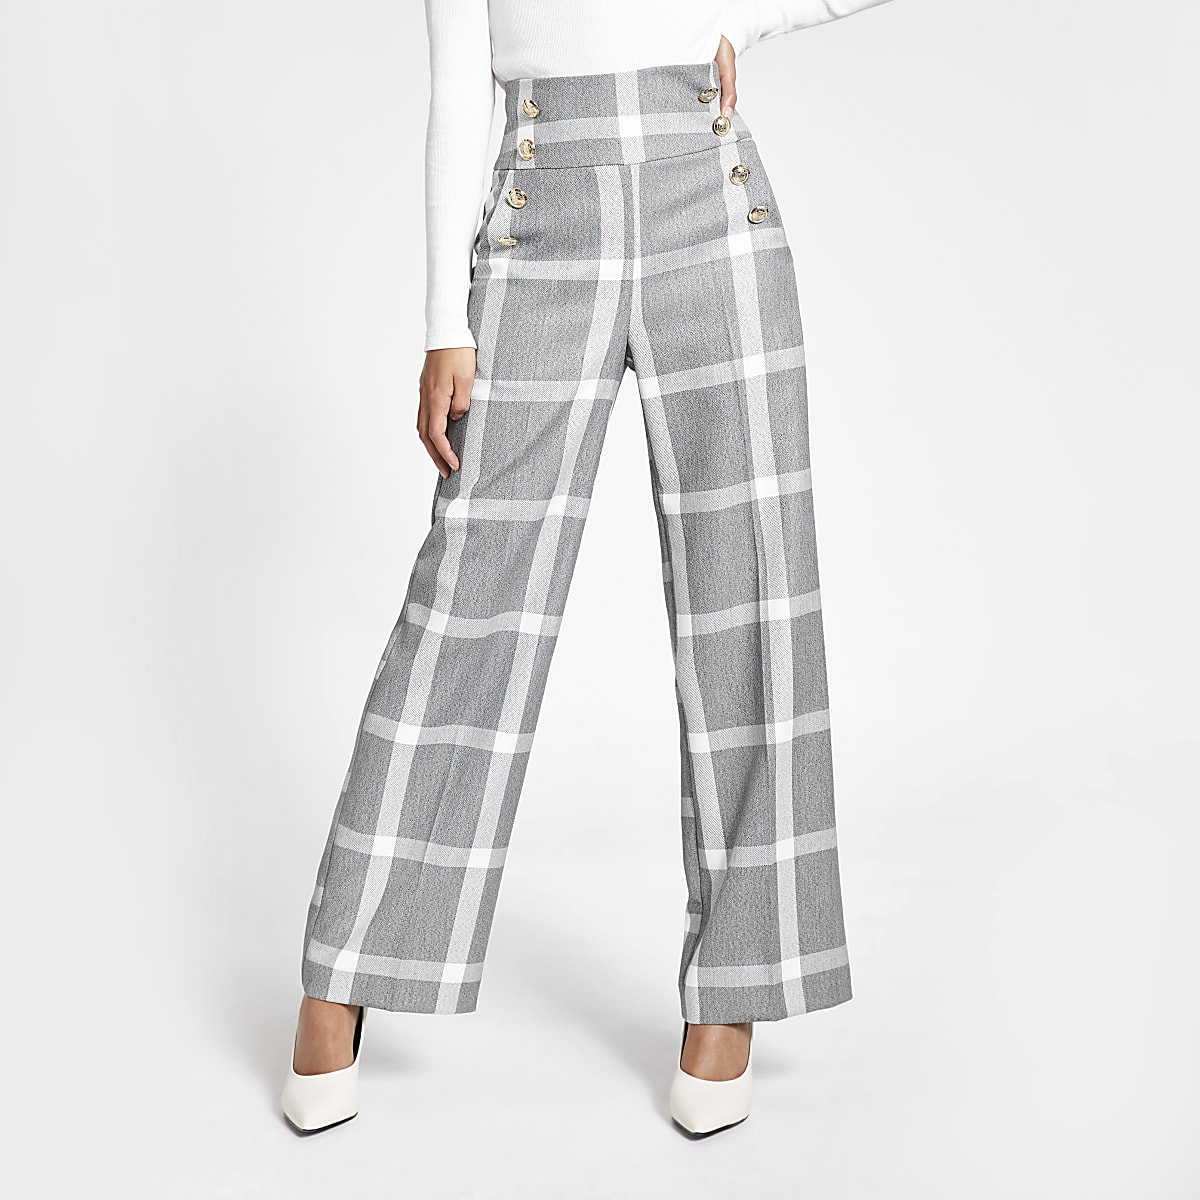 Grey check button front wide leg trousers